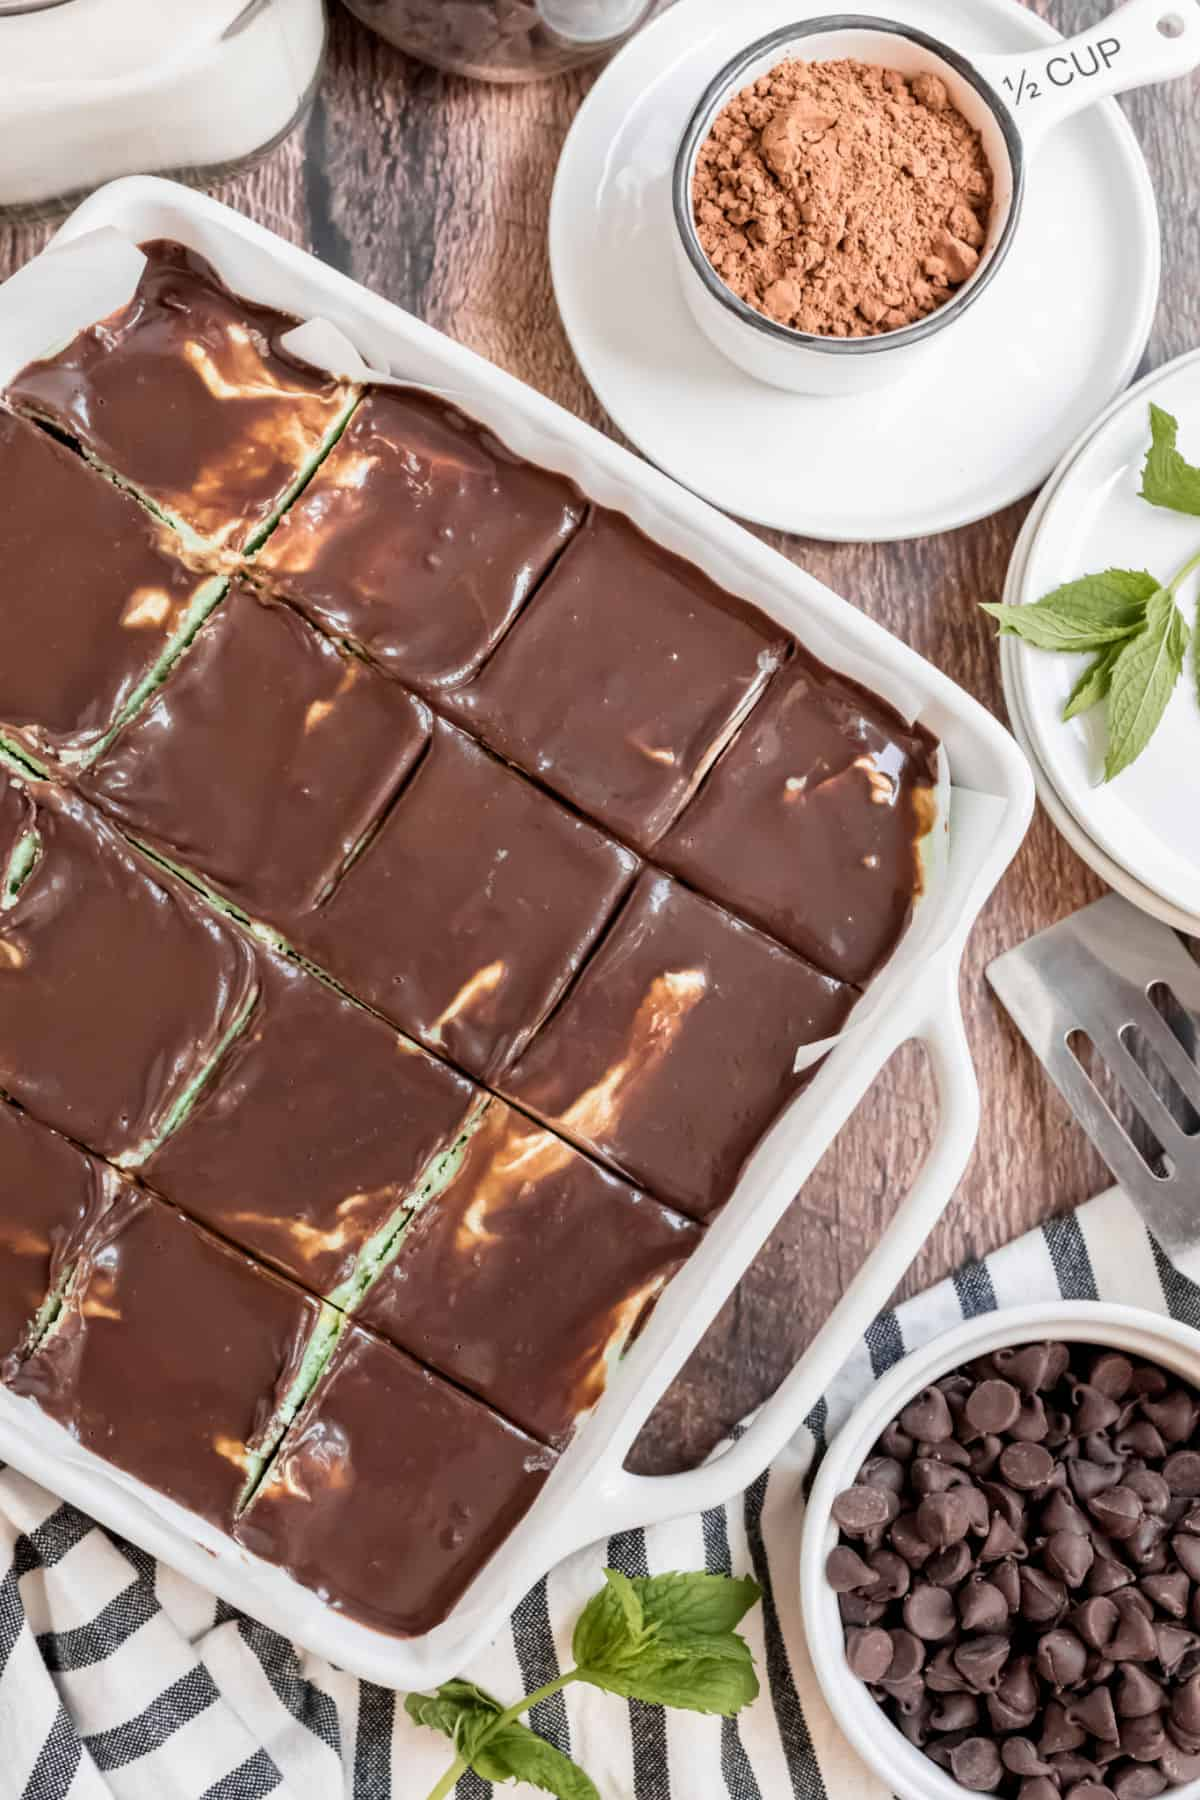 White baking dish with chocolate mint brownies sliced and ready to serve.